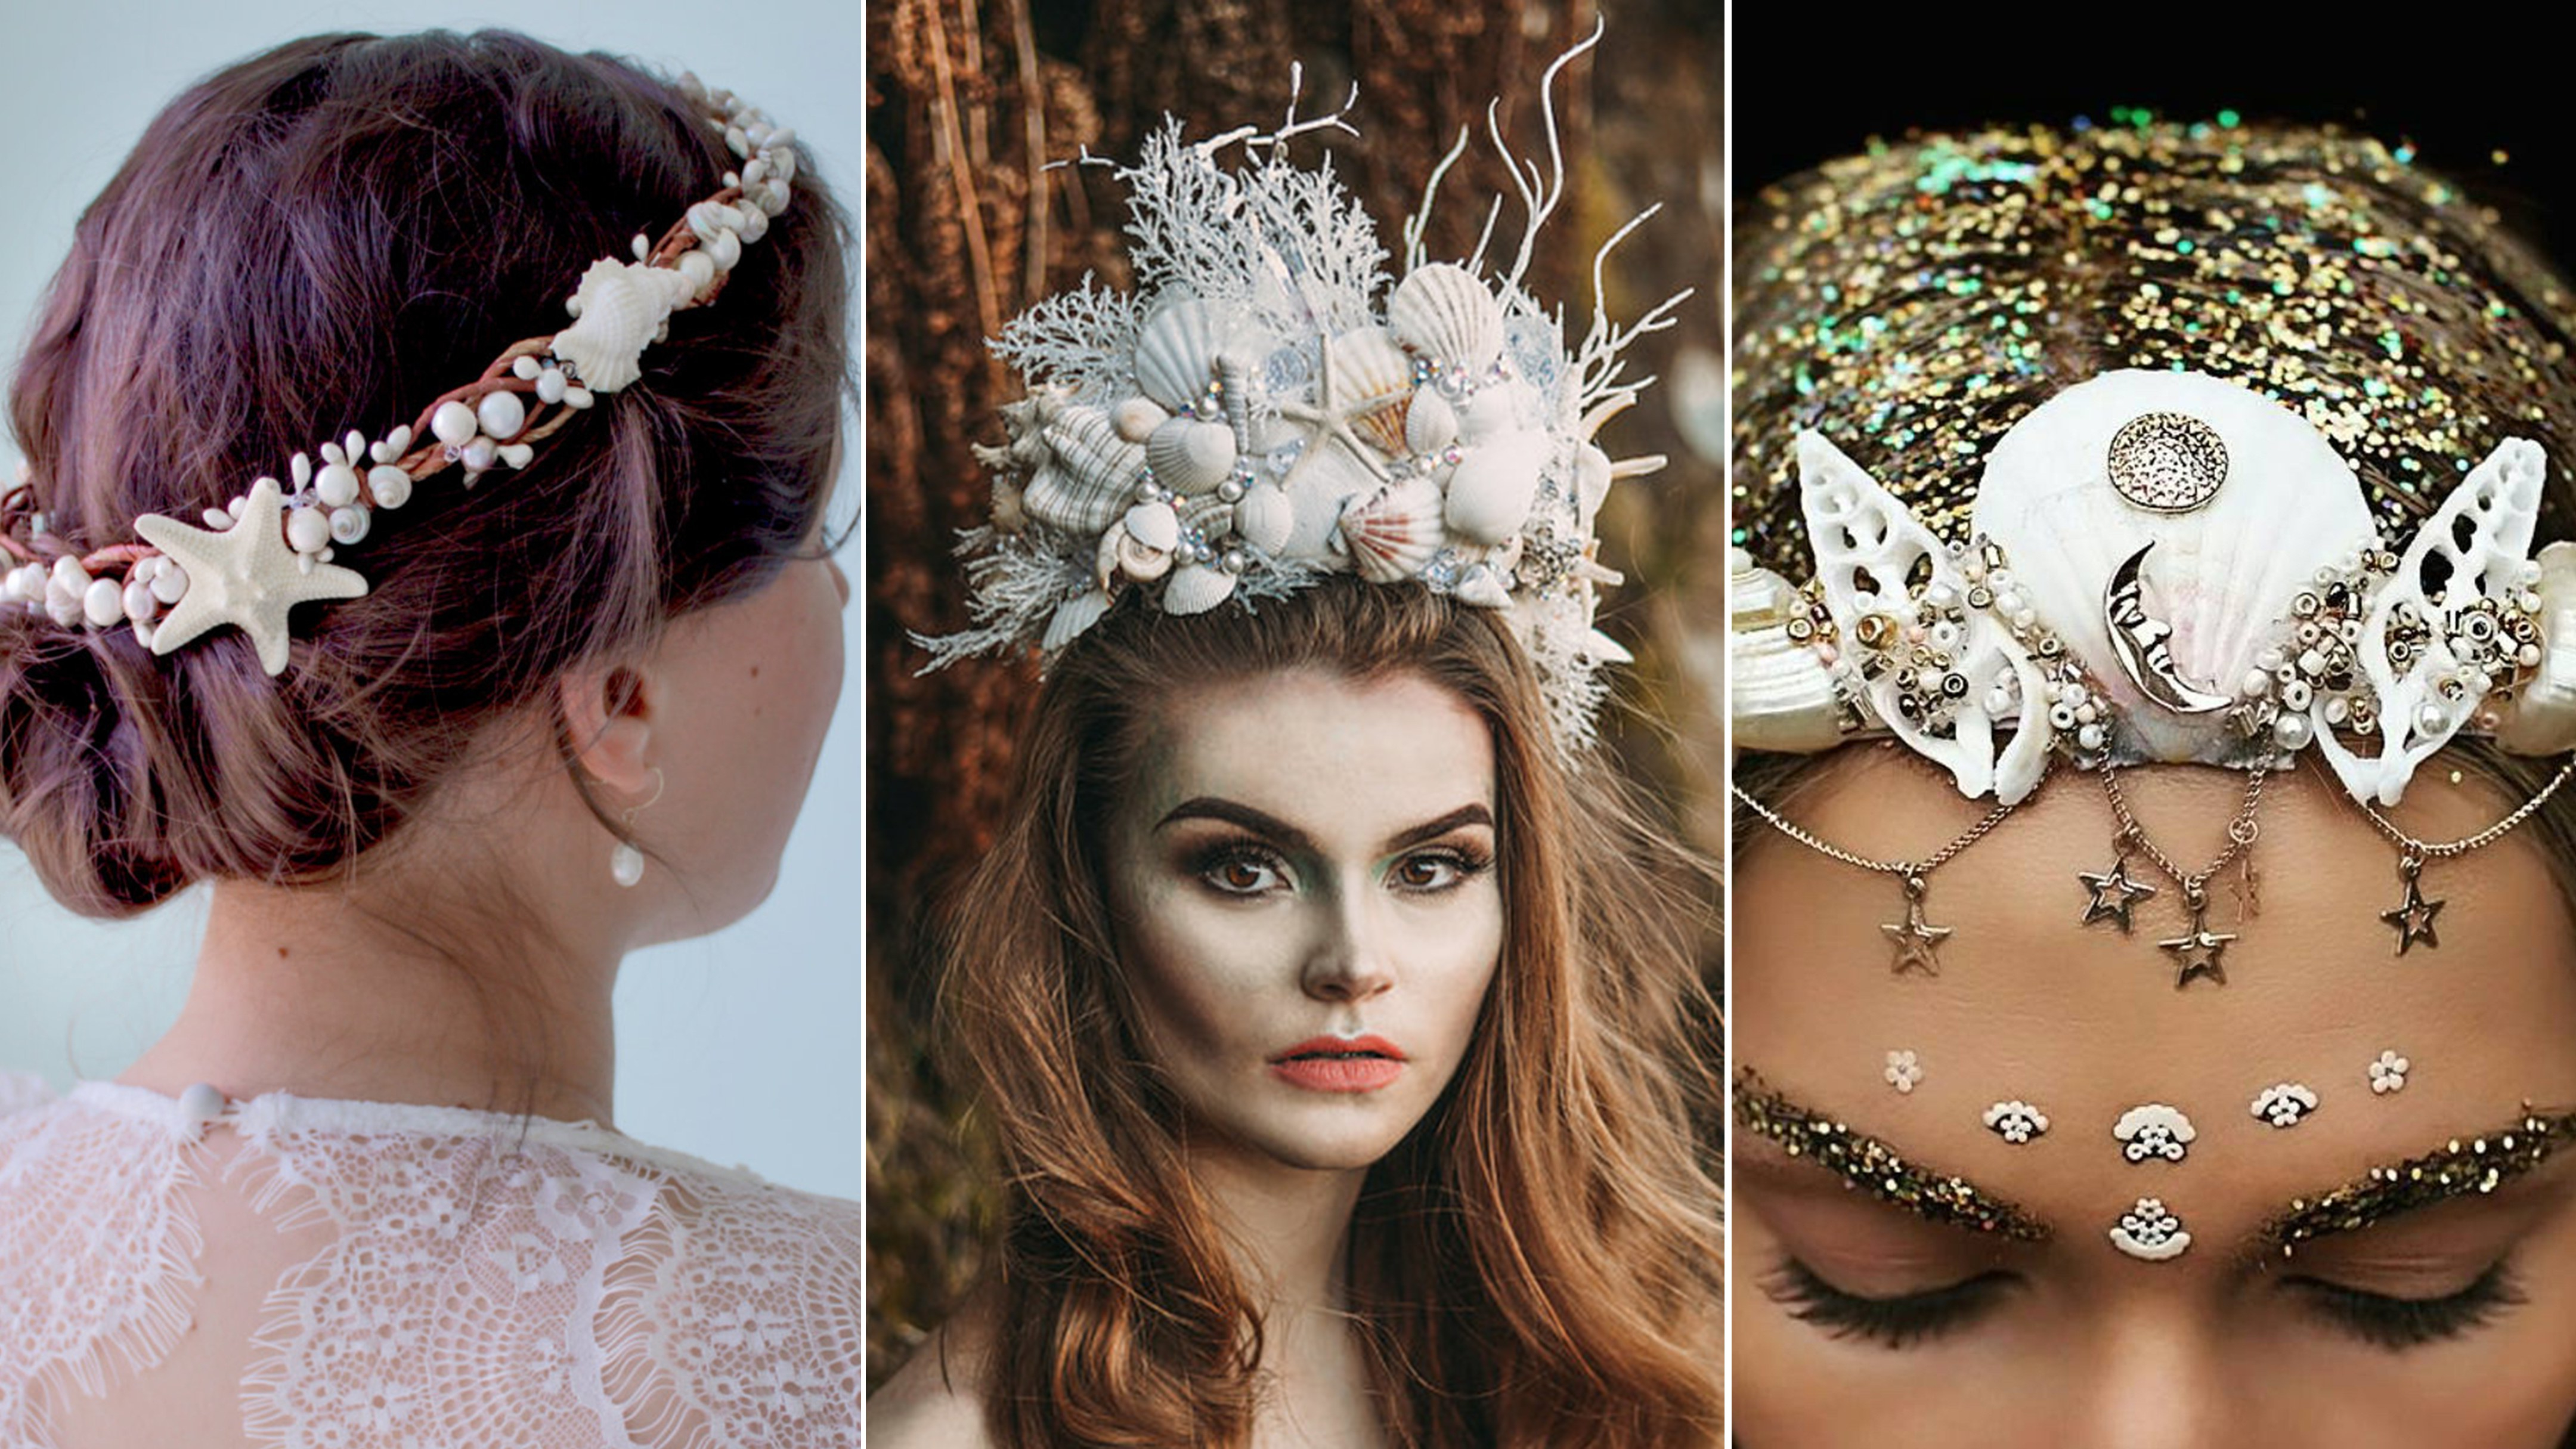 Newest Mermaid Inspired Hairstyles For Wedding In 10 Stunning Mermaid Crowns To Combat Your Flower Crown Fatigue – Allure (View 7 of 20)